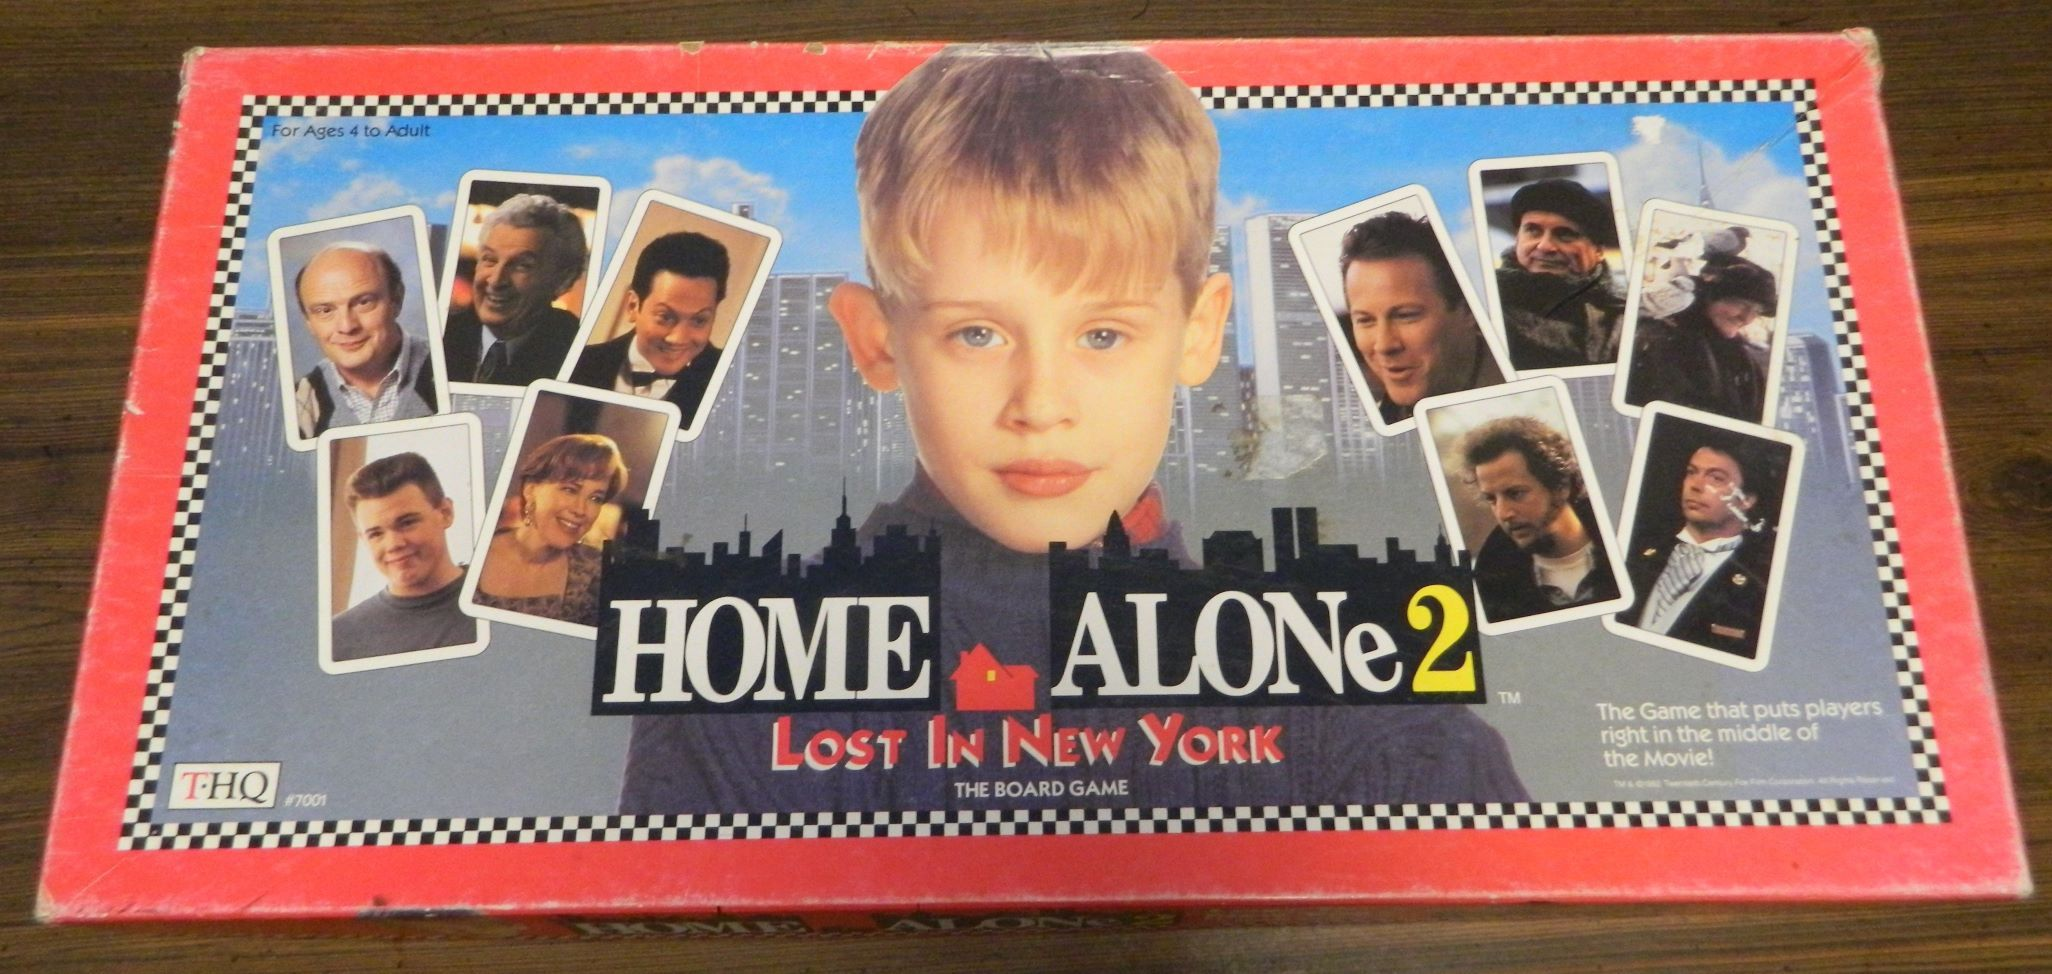 Box for Home Alone 2: Lost in New York